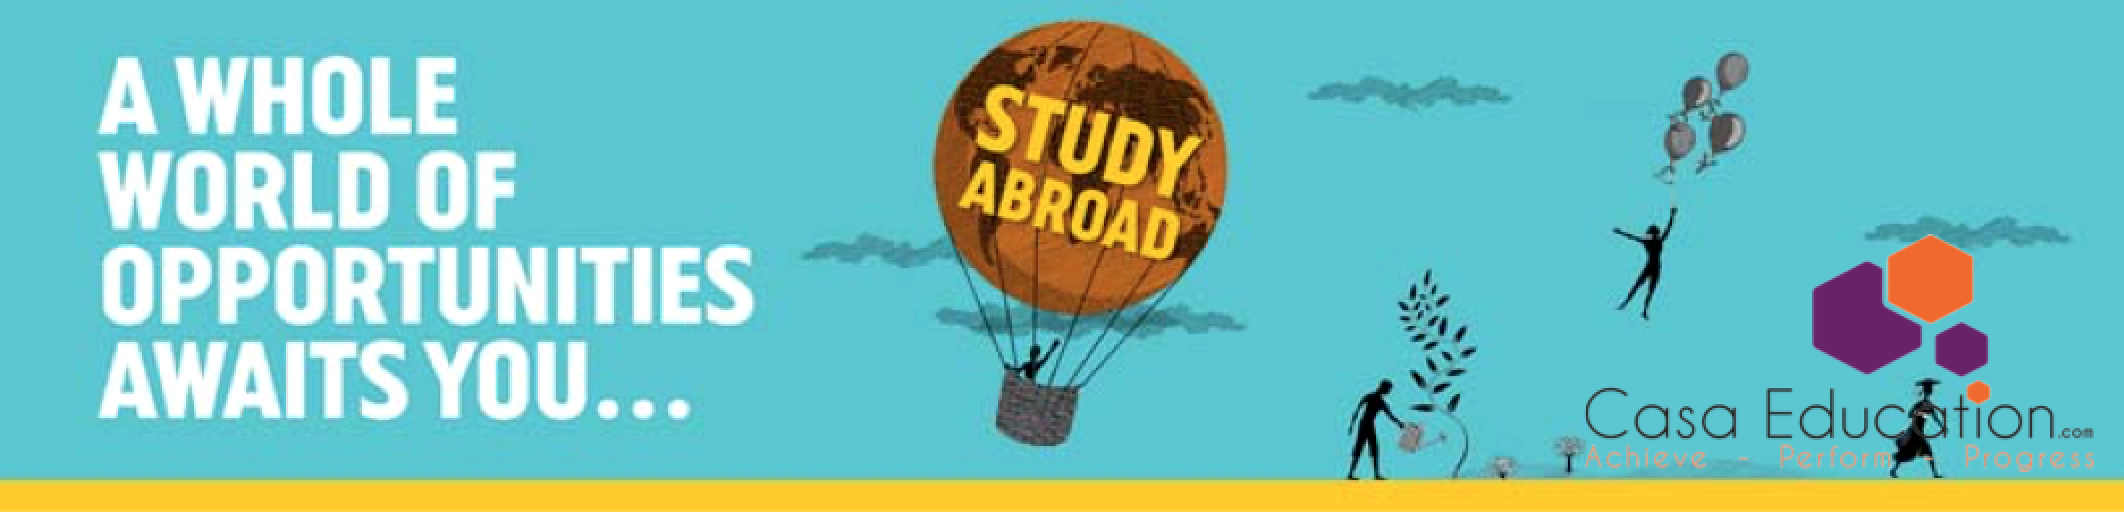 banner study abroad CasaEducation